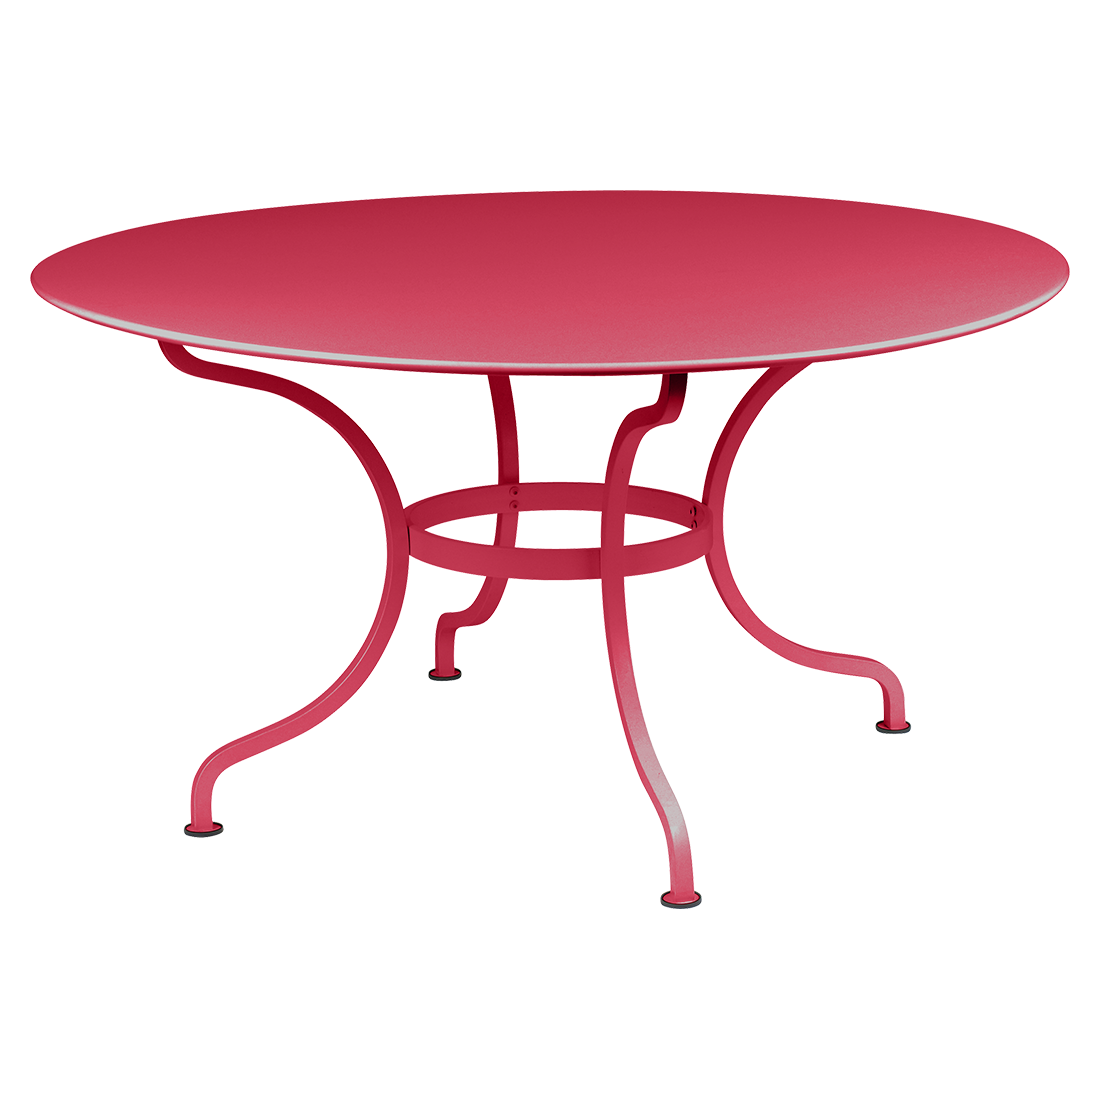 table de jardin, table metal, table ronde metal, table ronde rose